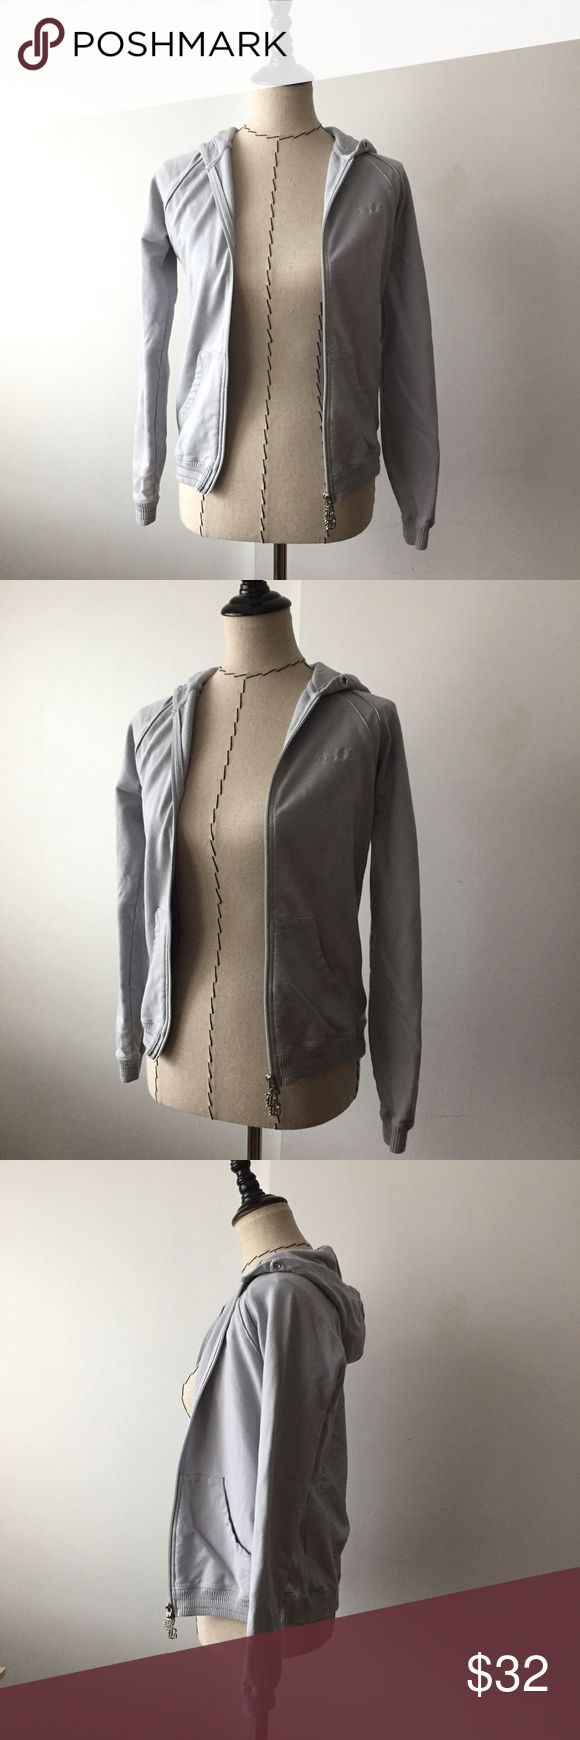 BCBG grey zip up hoodie jacket 95 cotton, 5 spandex. Missing ties for the hoodie but other than that great condition. Zips in the front and has two pockets. Detailing on the back as shown in photo. BCBGMaxAzria Jackets & Coats